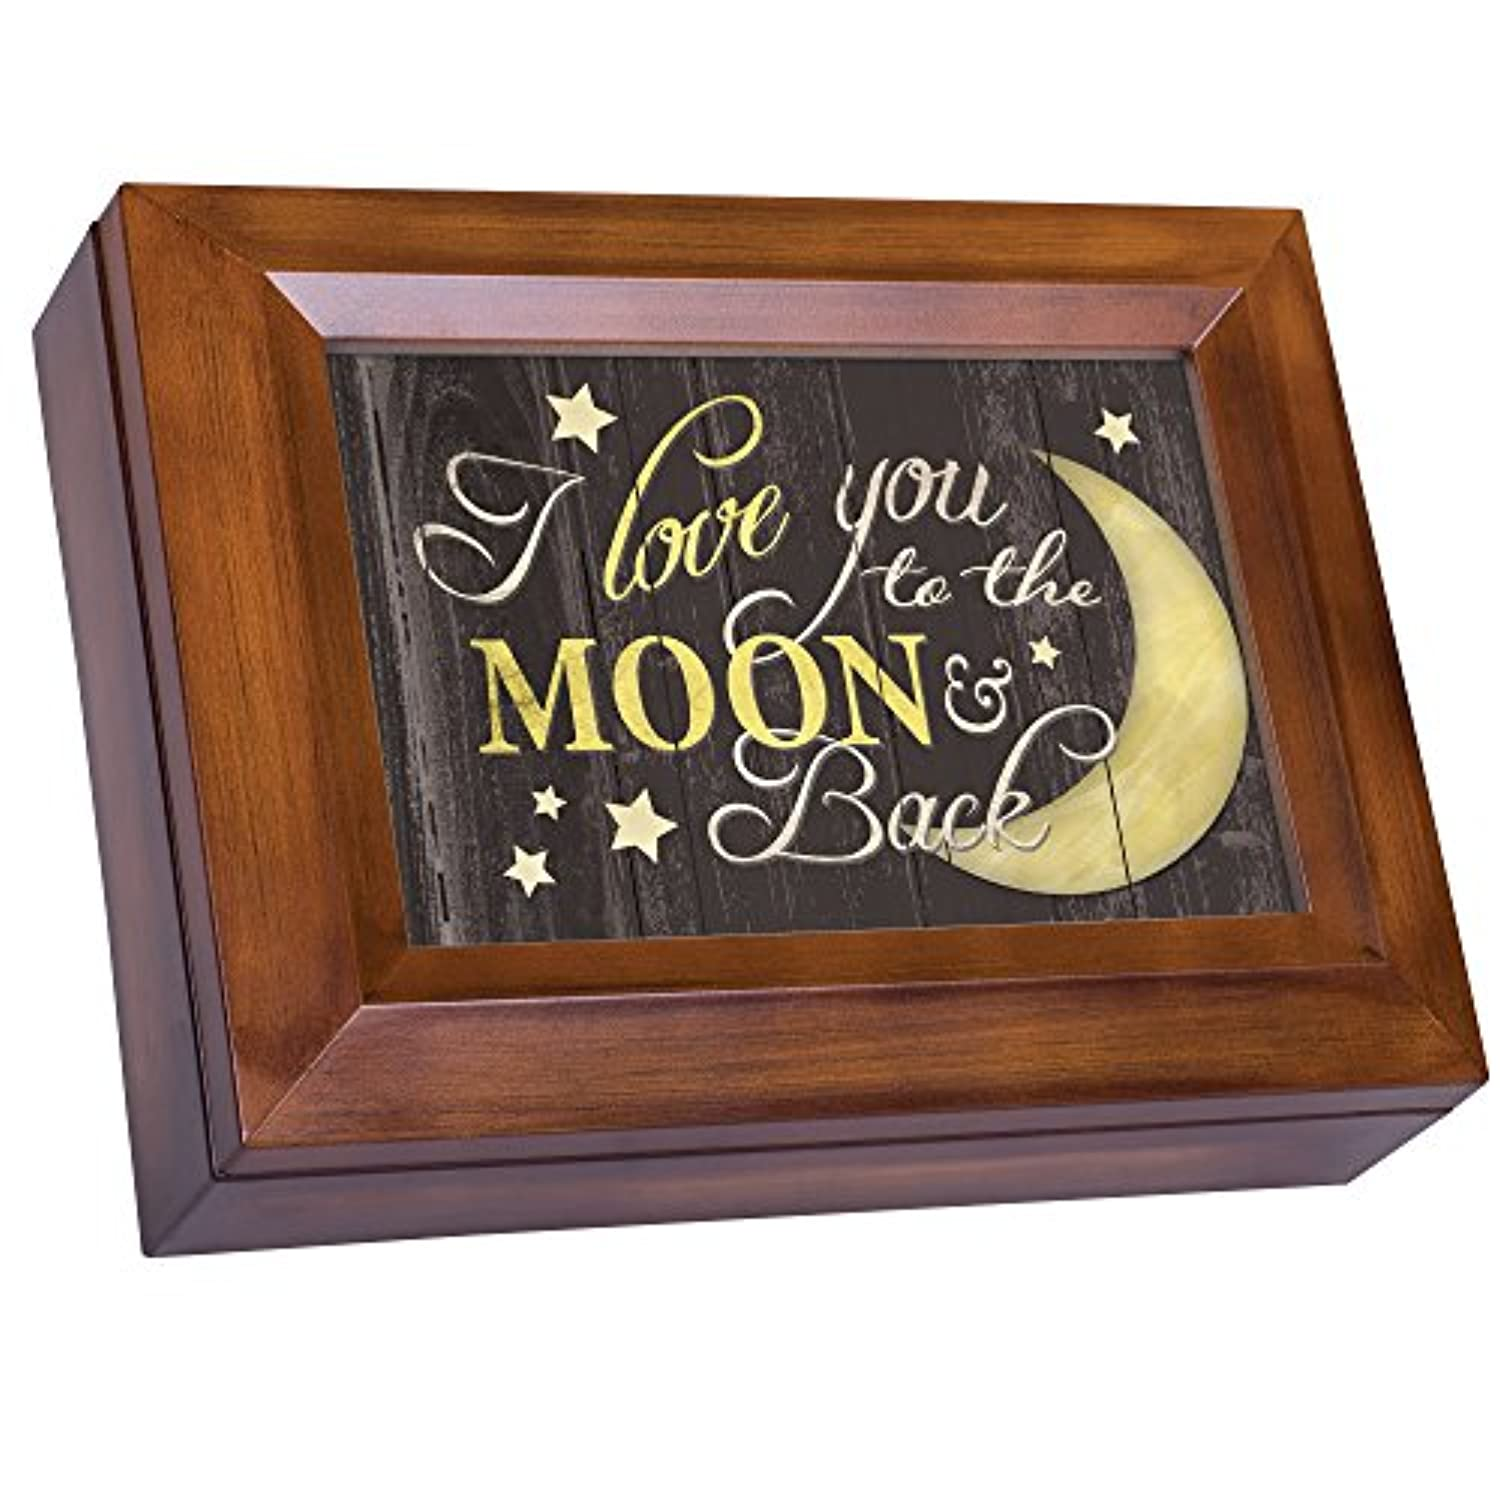 Love You To The Moon And Back木目調デジタル記念品音楽ボックスPlays Lean On Me